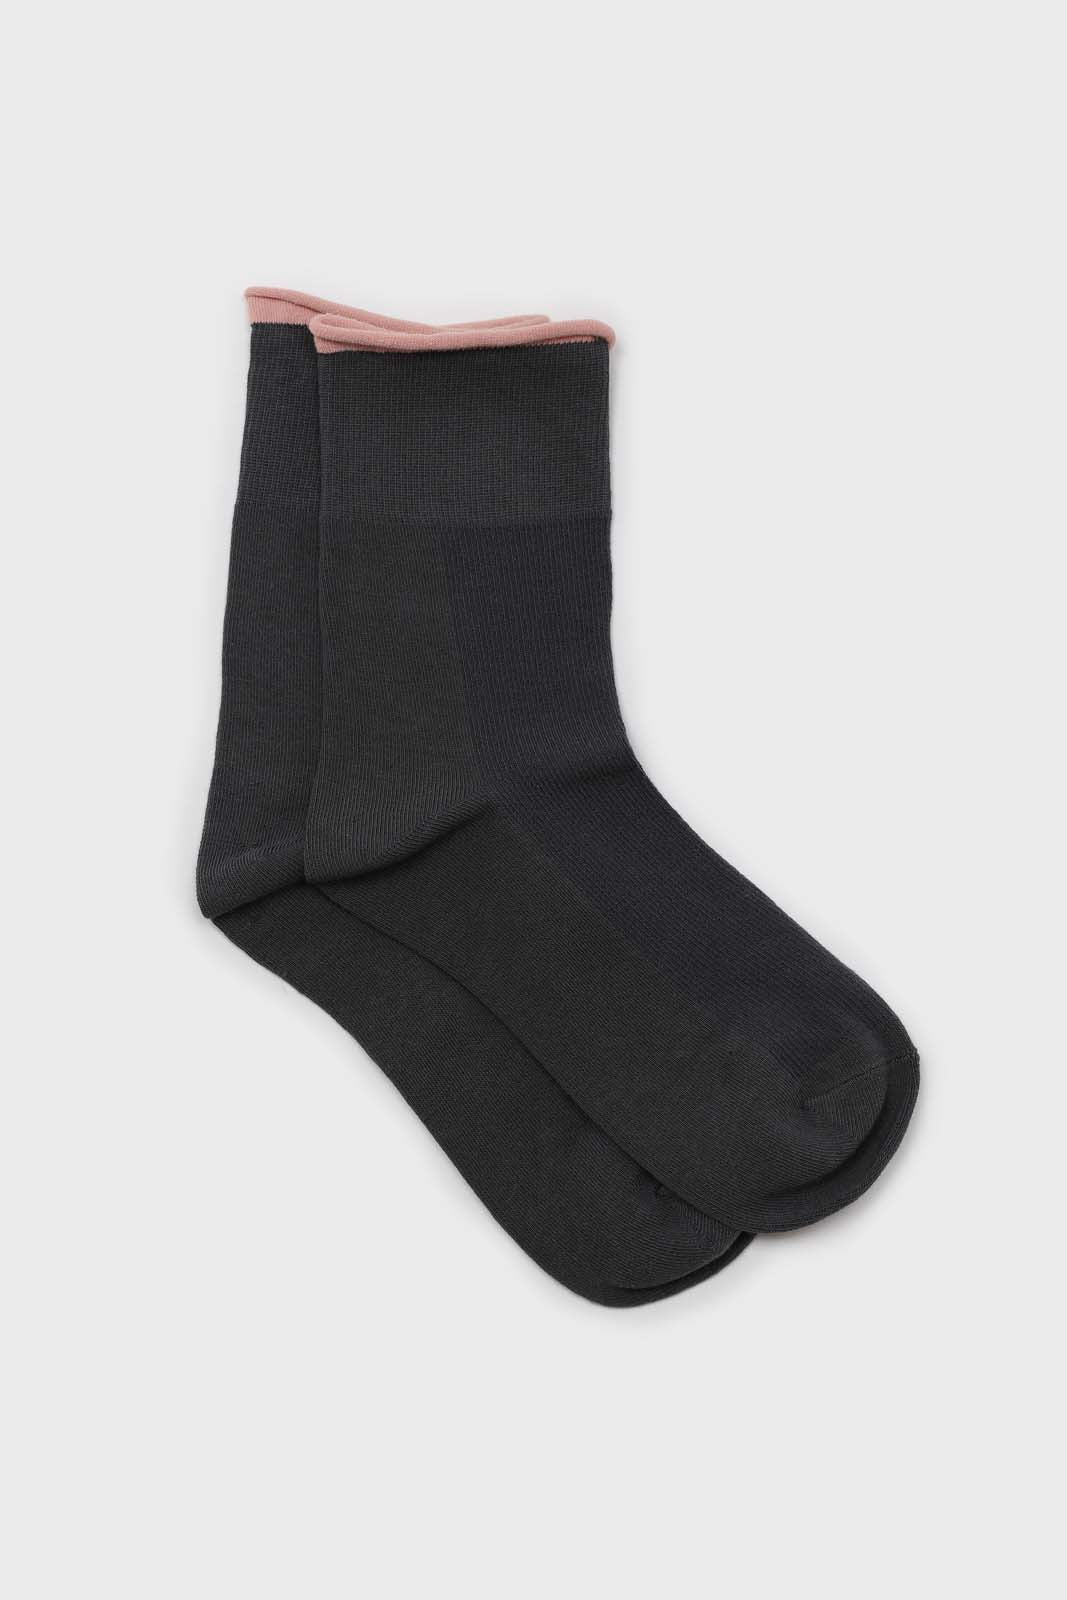 Charcoal and light pink rolled trim socks1sx